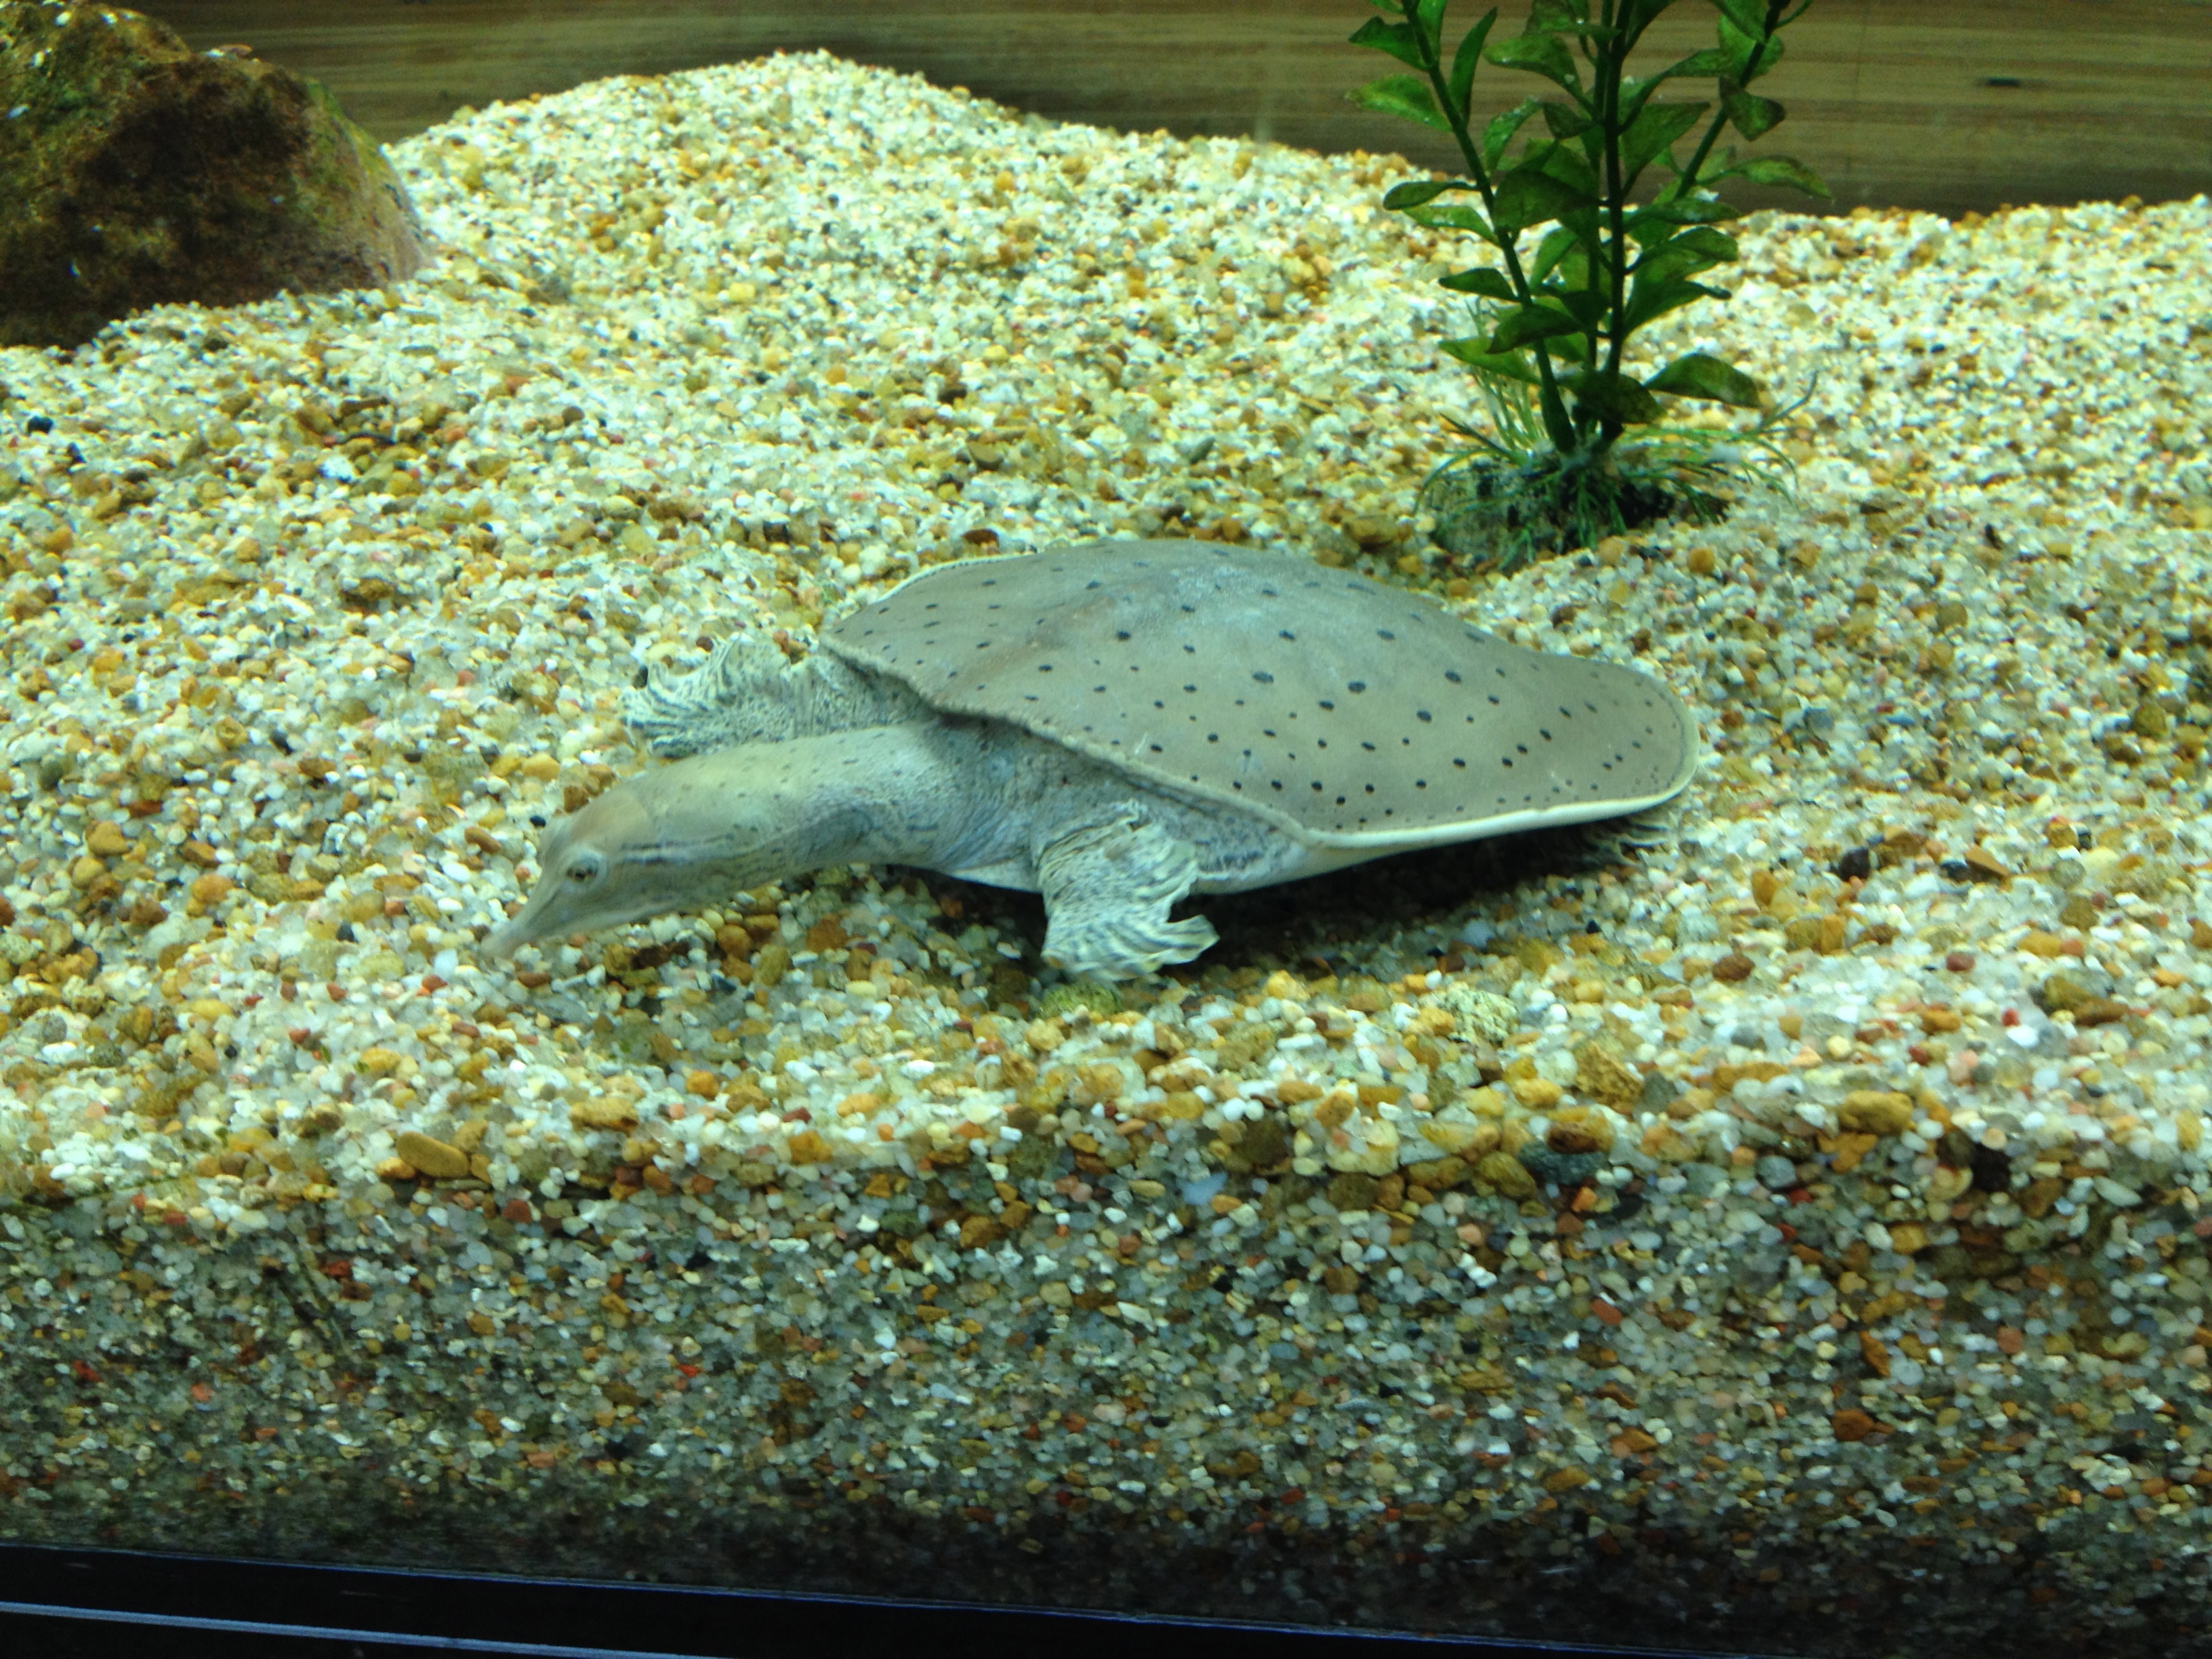 Freshwater aquarium fish milwaukee -  Advancements In Energy Production And A Cool Section Full Of Innovations In Engineering And Design Did You Know Milwaukee Is A Well Known For